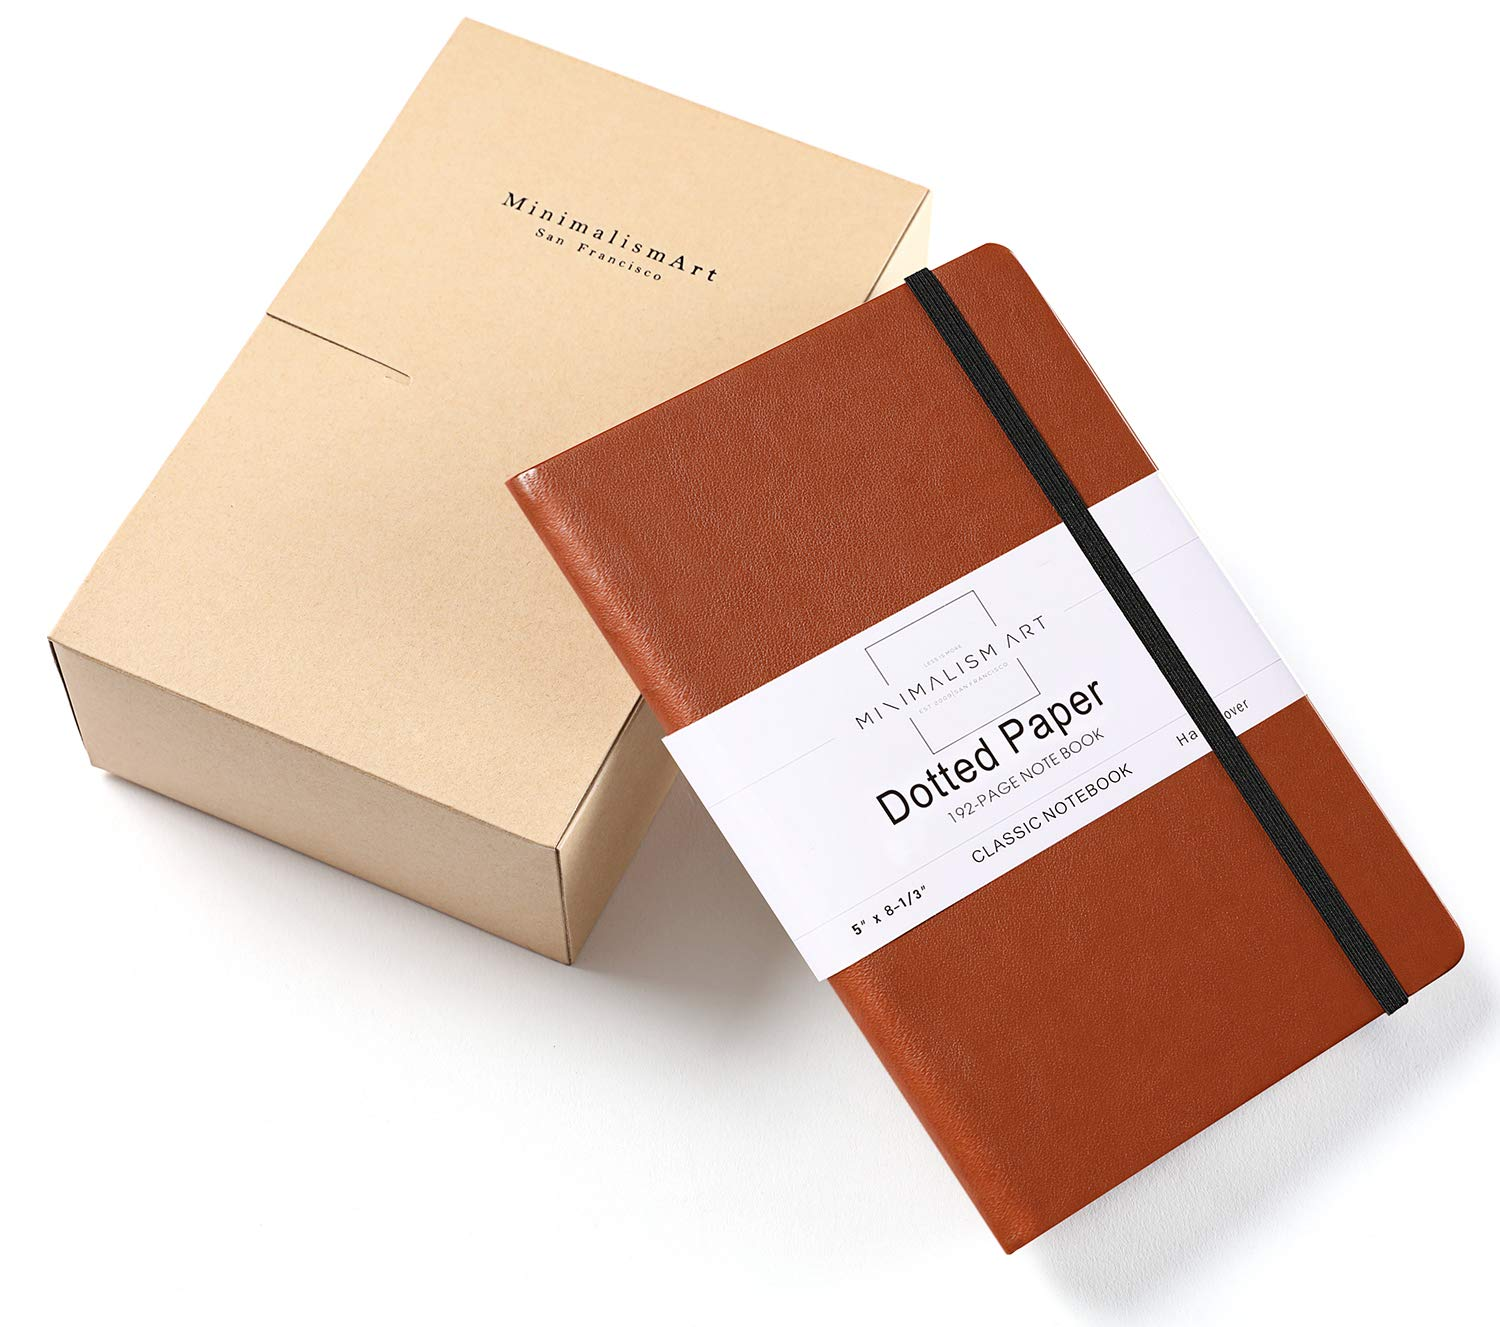 Minimalism Art, 3-Pack Classic Notebook Journal, A5 Size 5 X 8.3 inches, Brown, Dotted Grid Page, 192 Pages, Hard Cover, Fine PU Leather, Inner Pocket, Quality Paper-100gsm, Designed in San Francisco